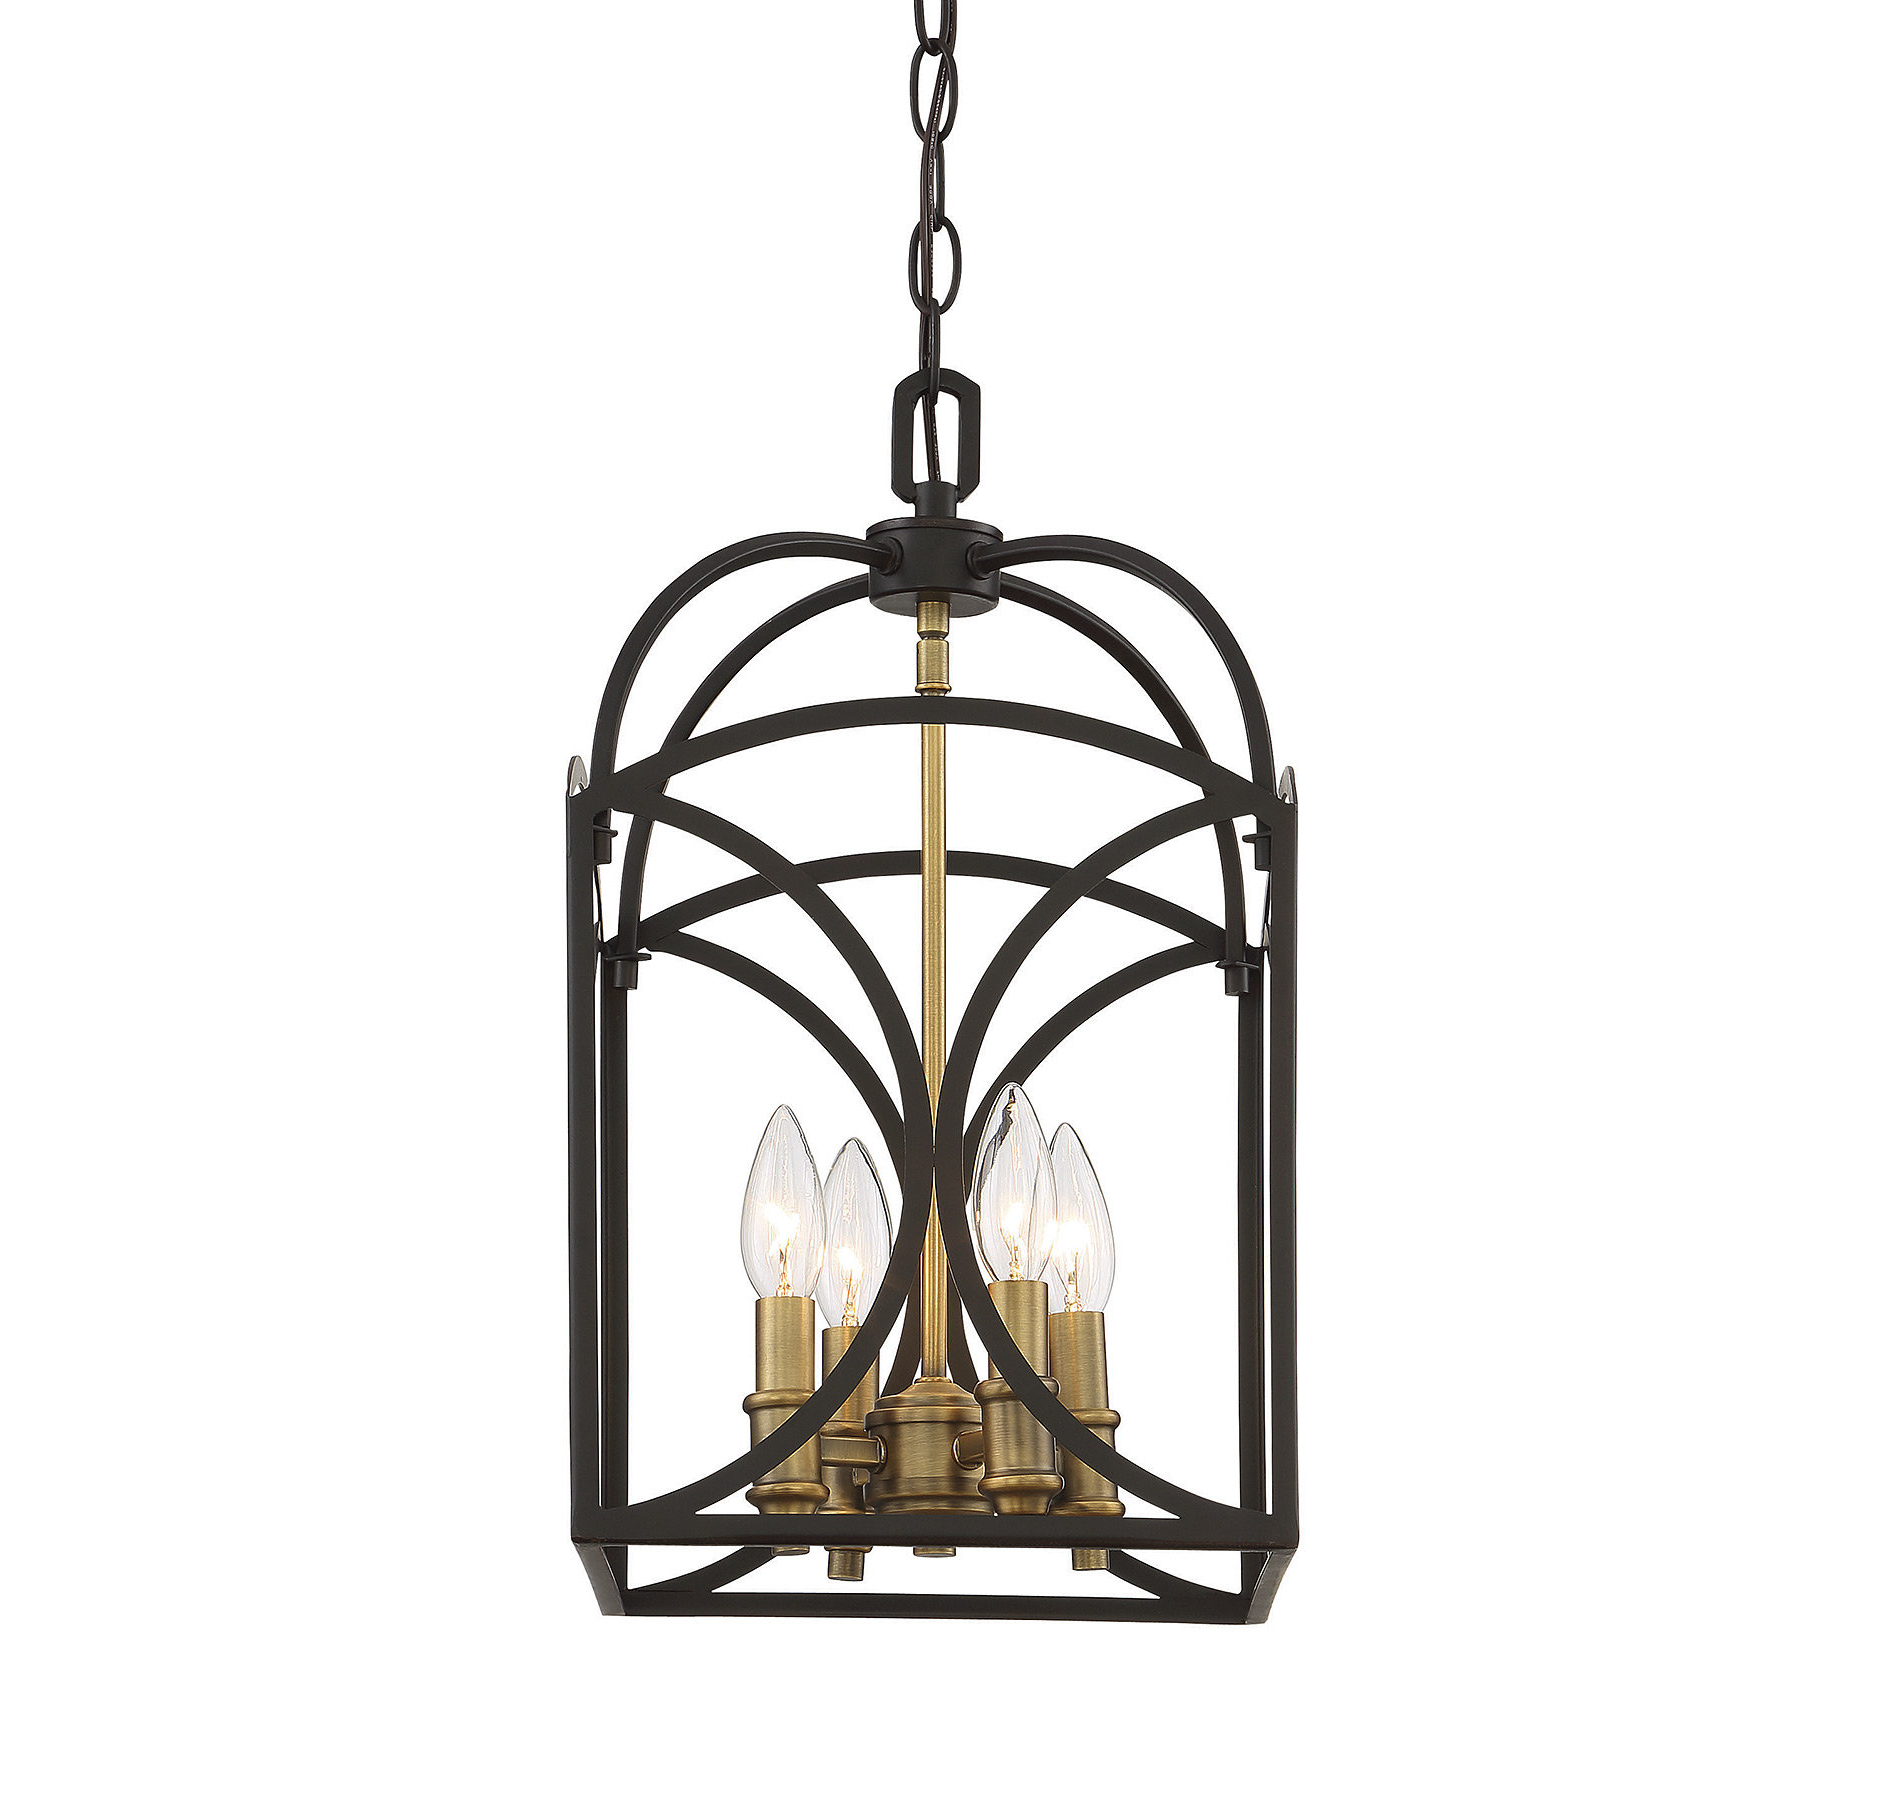 Famous Bungalow Rose Yepez 4 Light Lantern Square Pendant Inside Taya 4 Light Lantern Square Pendants (View 13 of 20)